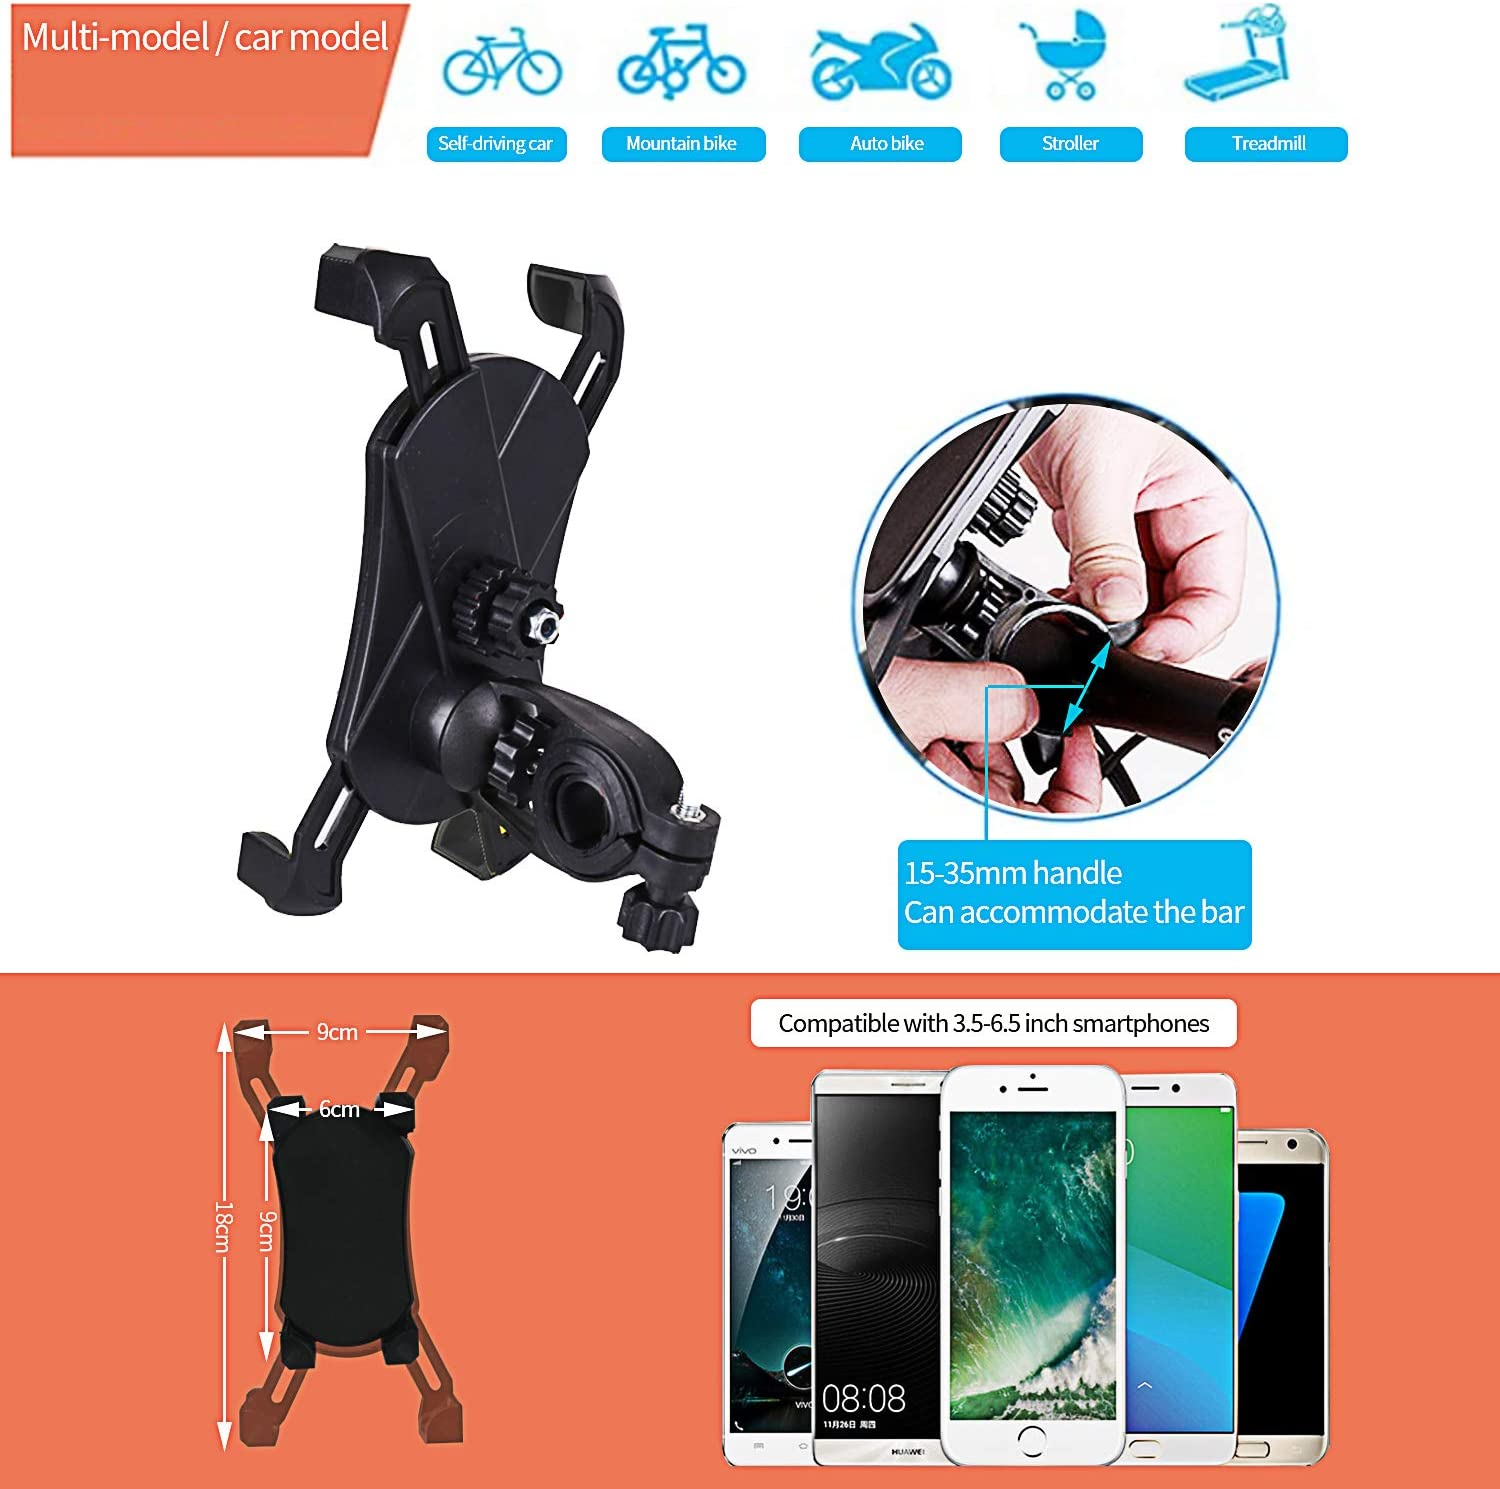 Mountain Bike Eagle Grab Mobile Phone Holder Bicycle Mobile Phone Holder Motorcycle Electric Car Universal Mobile Phone Navigation Stand Suitable for 3.5-6.5 Inch Mobile Phone.